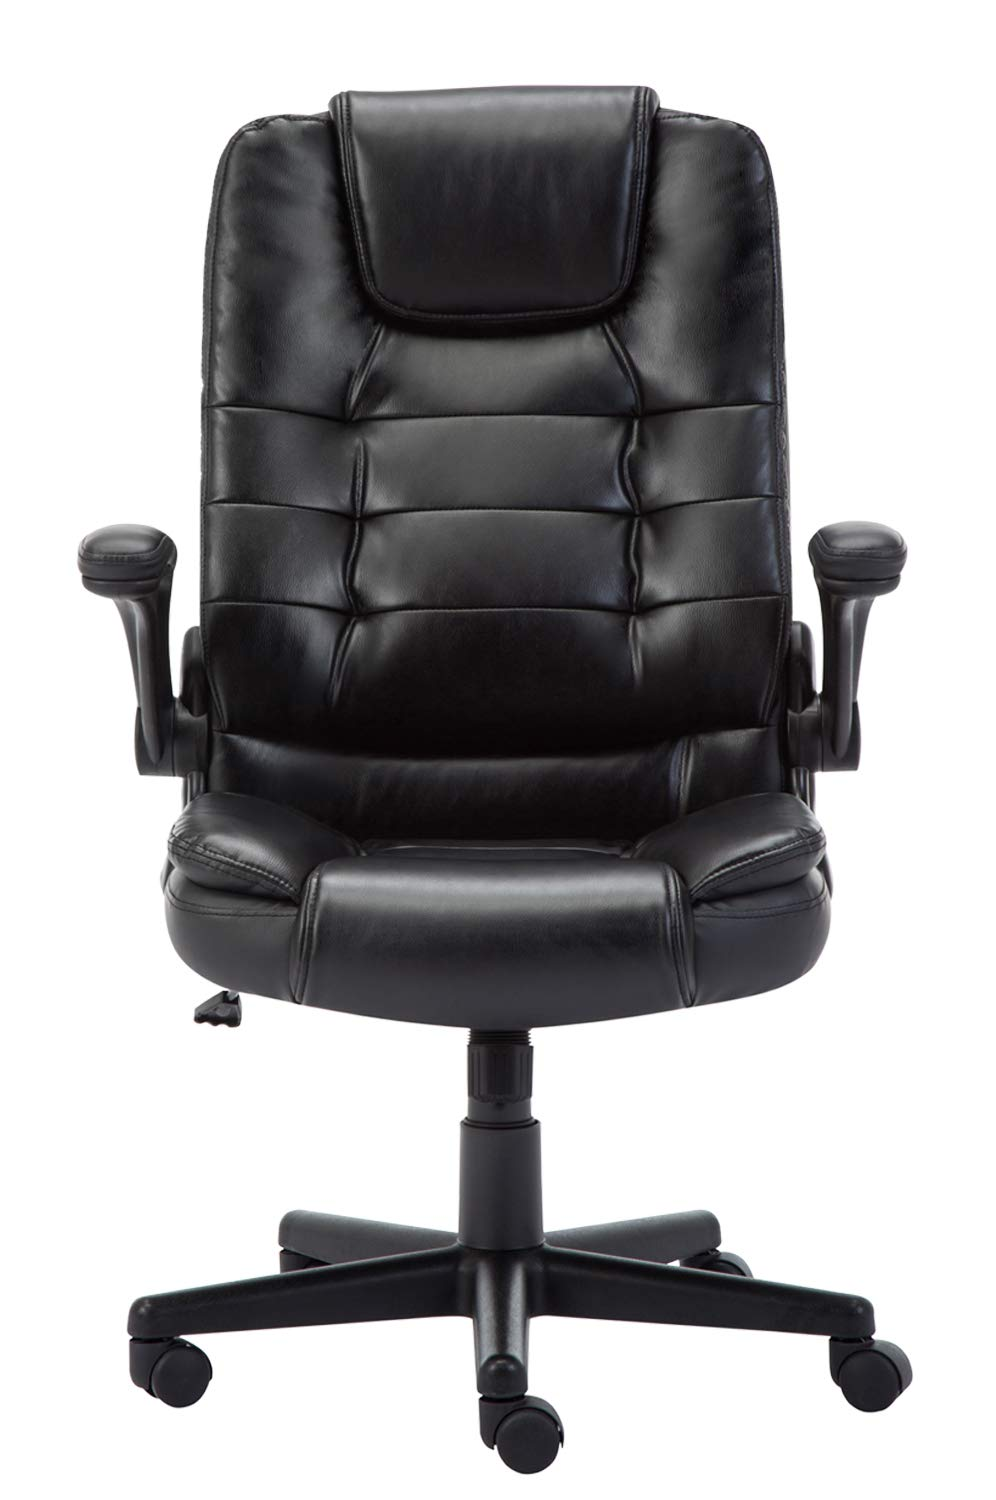 Leather Office Executive Compute Chair With Foldable Arms, Ergonomic Swivel Computer Desk Chair